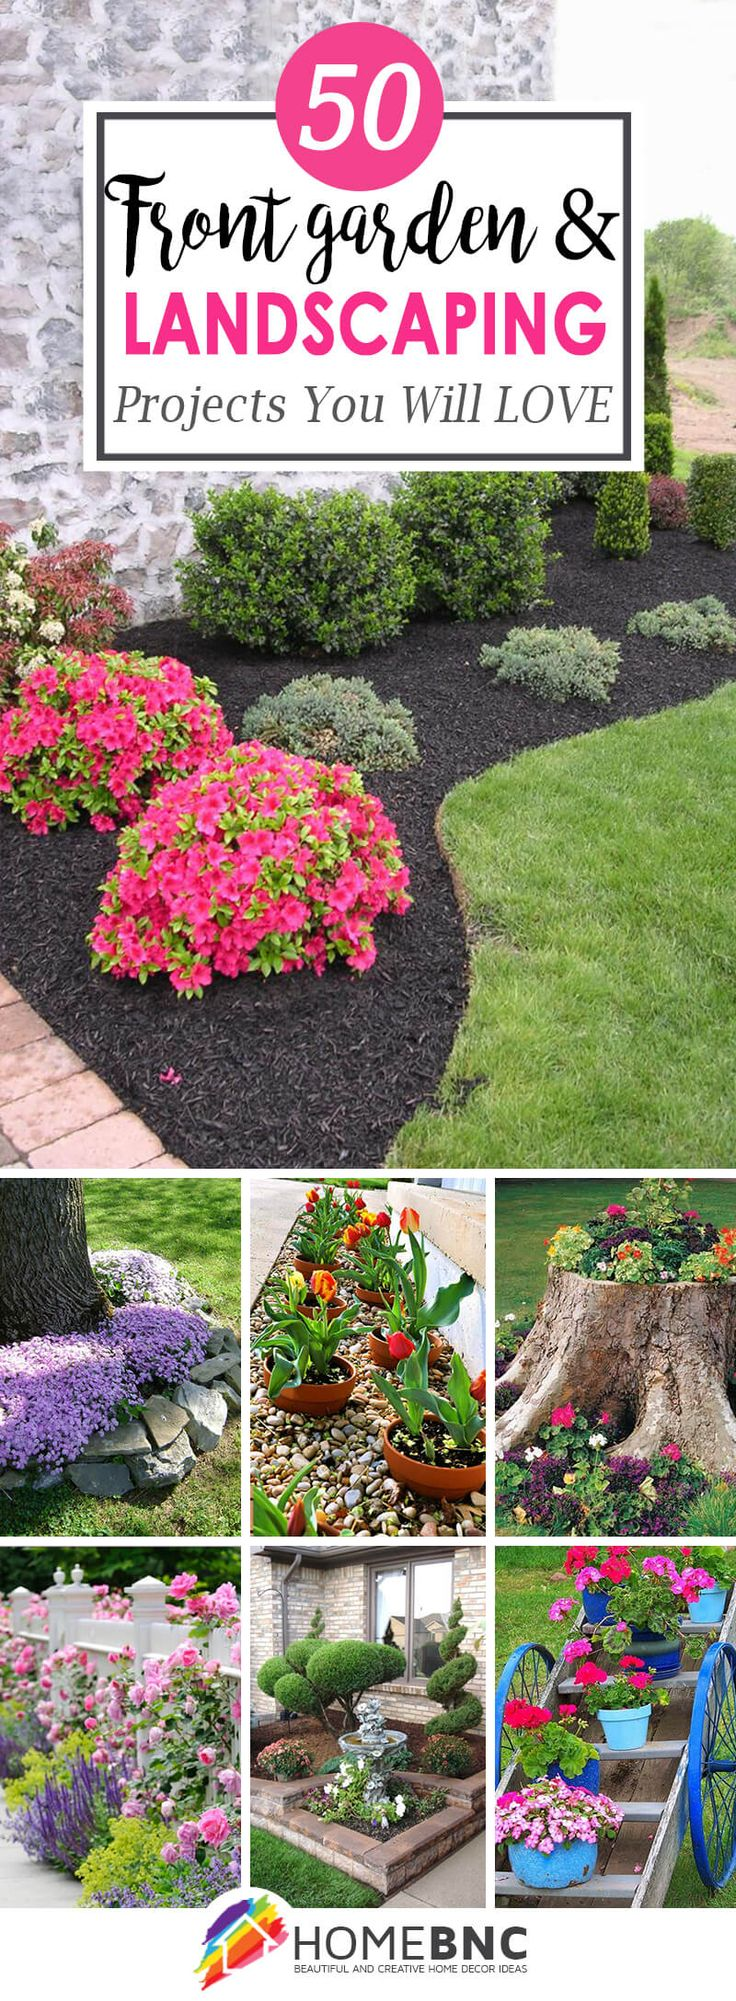 Flower garden design ideas - 50 Brilliant Front Garden And Landscaping Projects You Ll Love